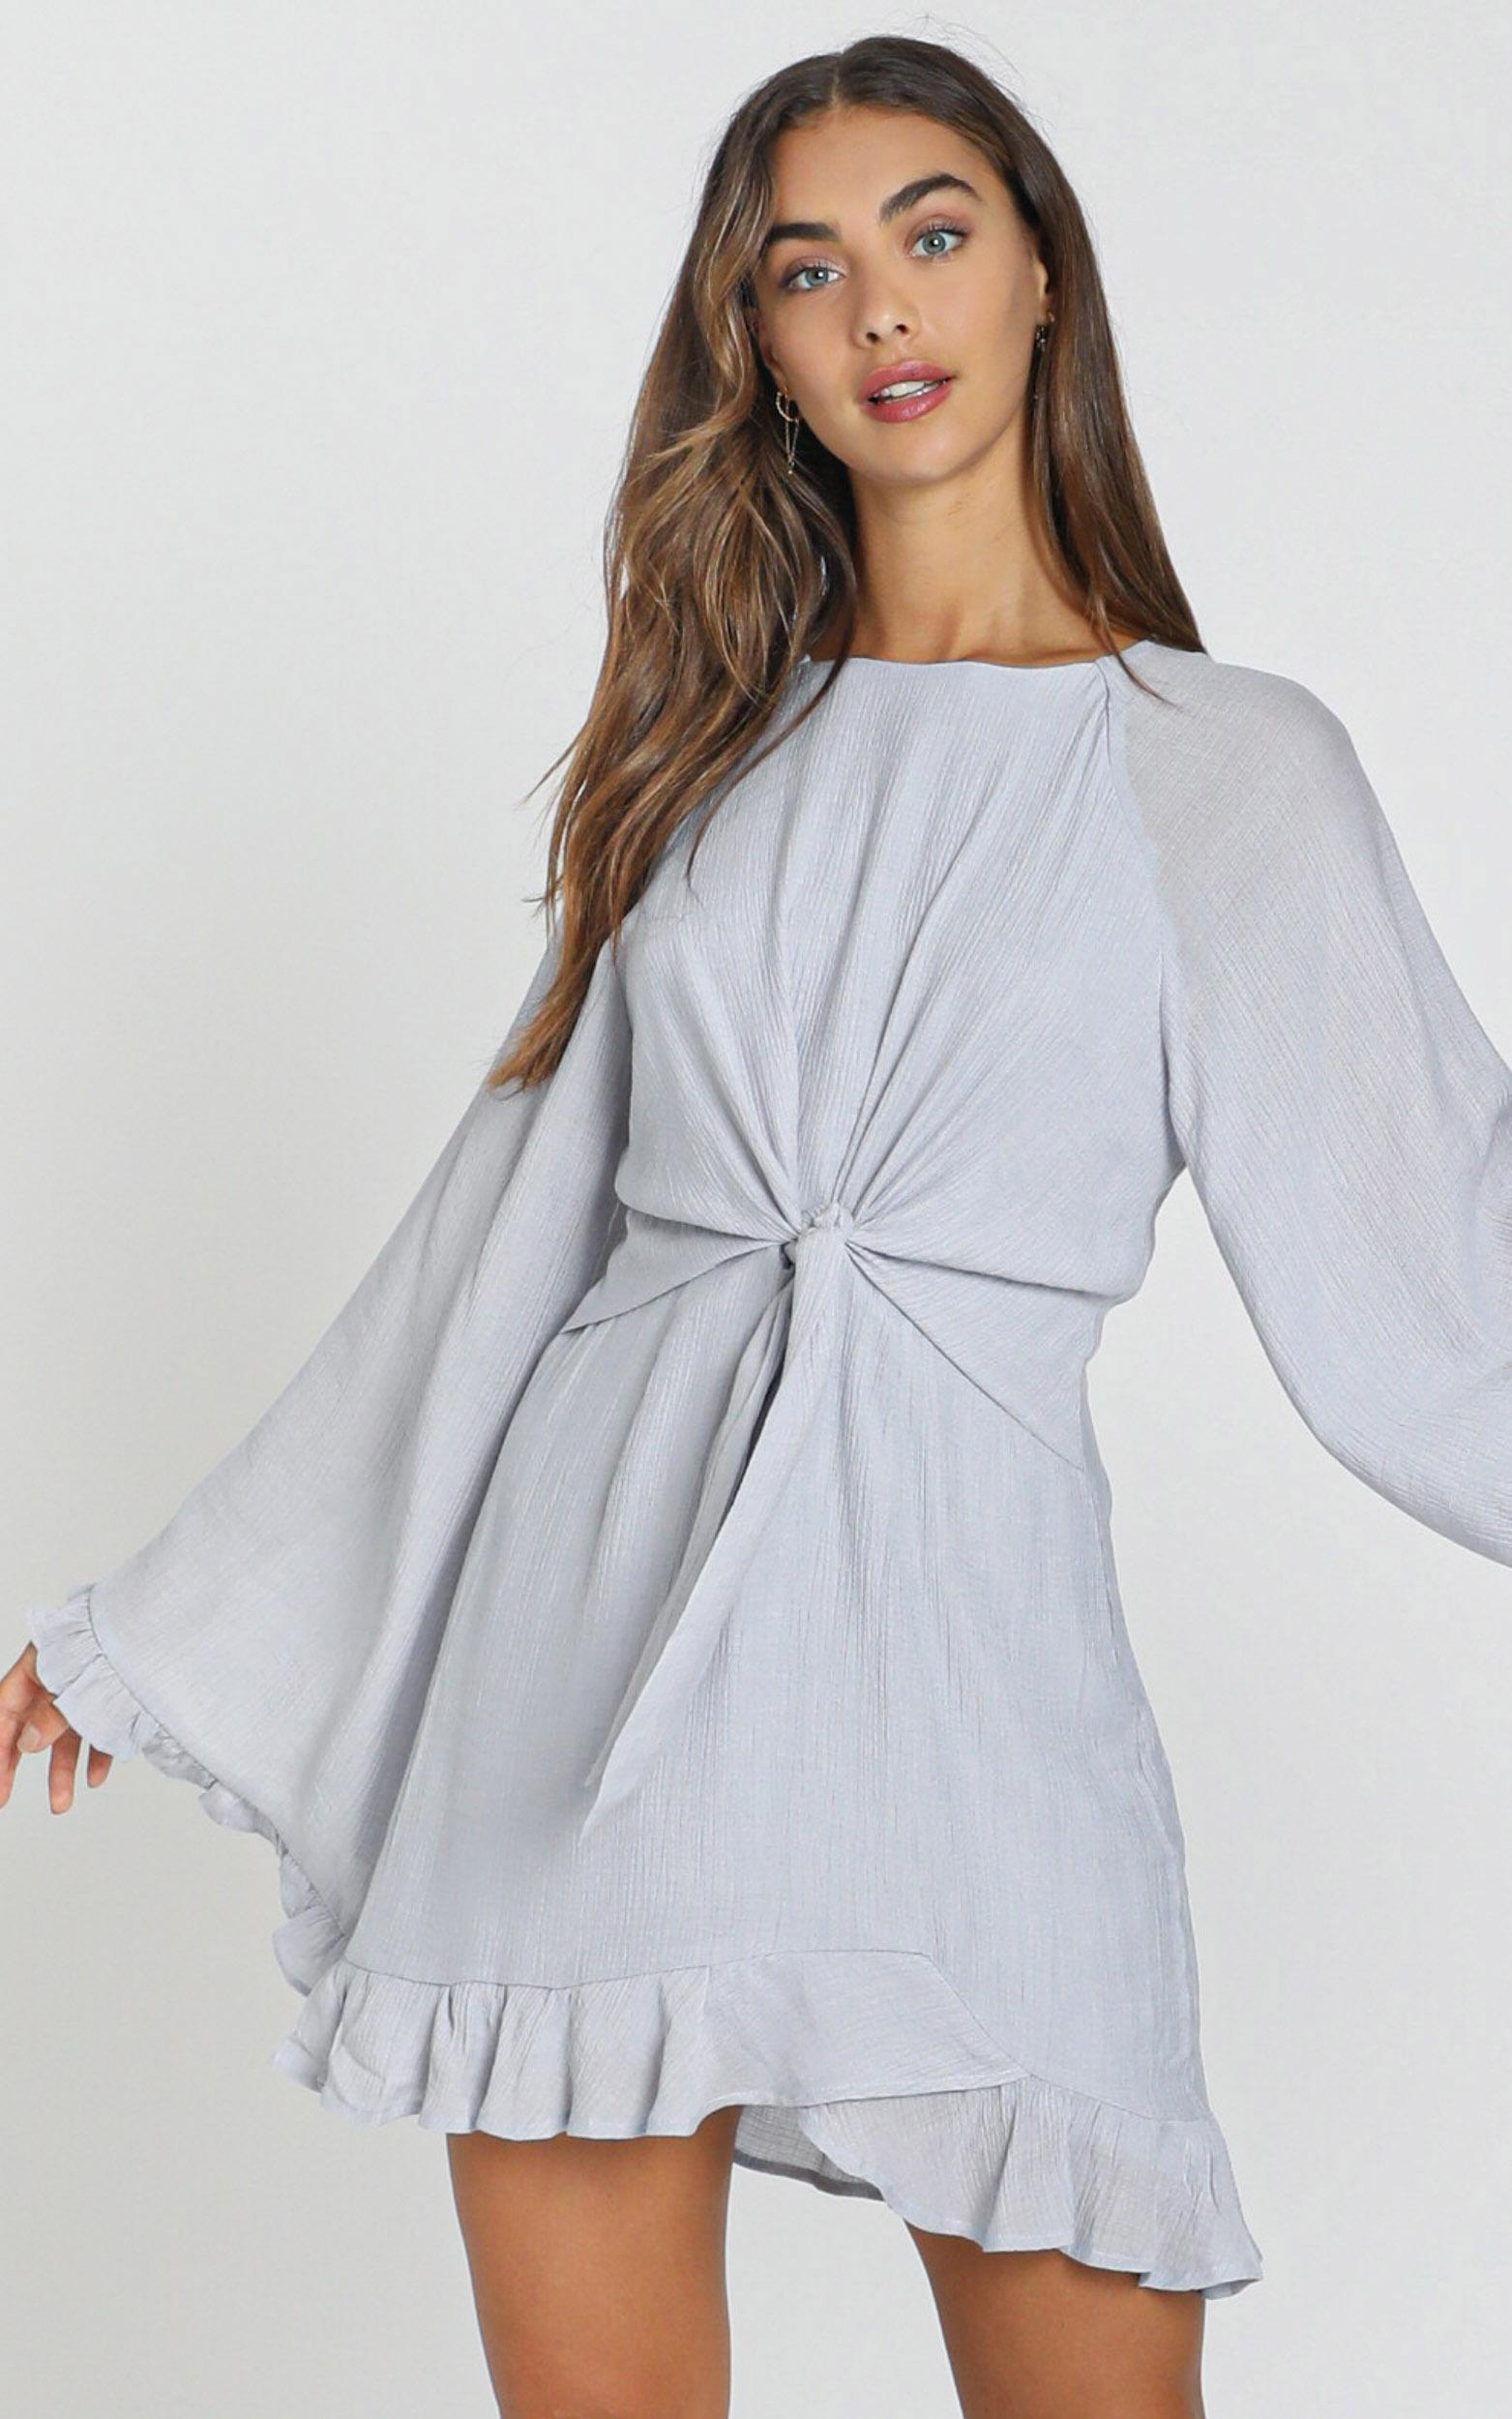 Ophelia Tie Front Dress in grey - 6 (XS), Grey, hi-res image number null